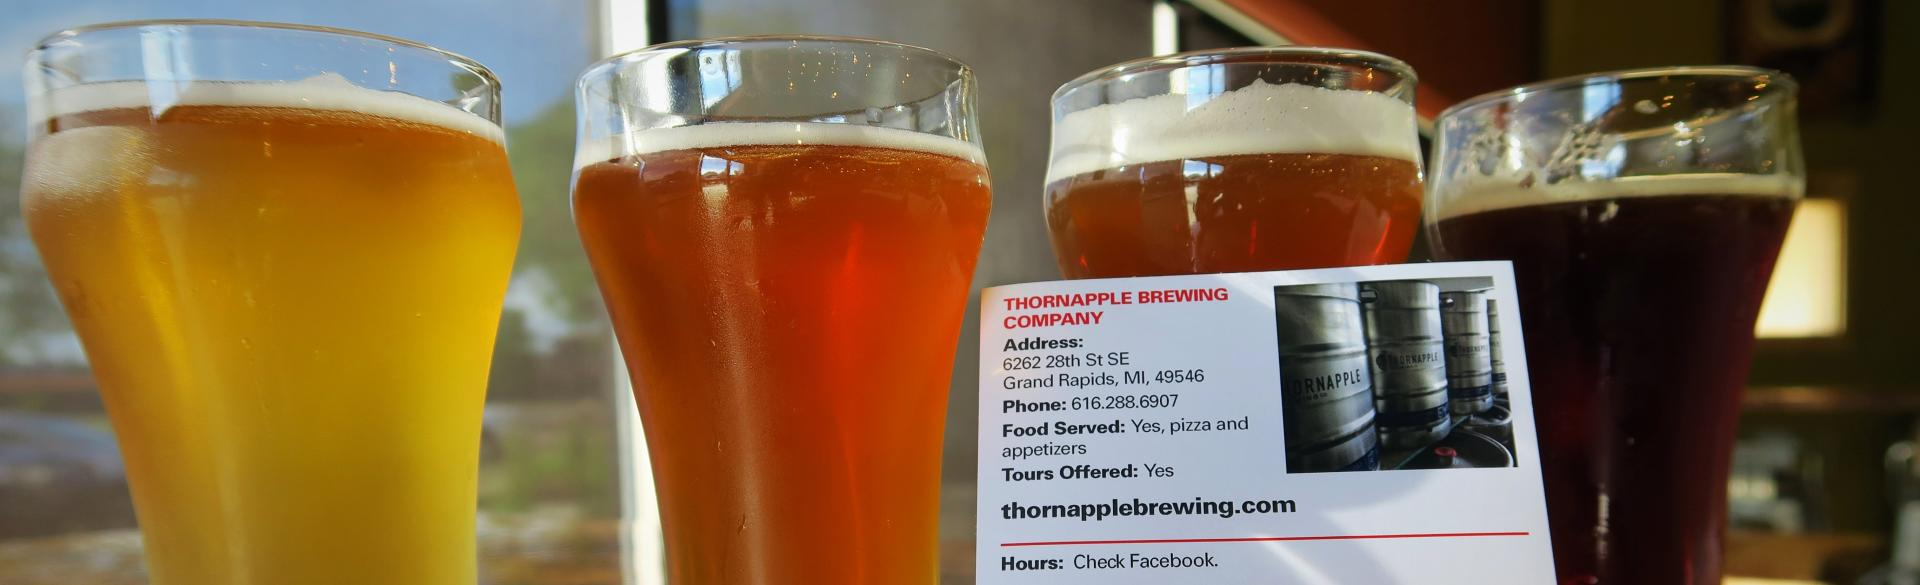 Breweries to Visit this Fall: Thornapple Brewing